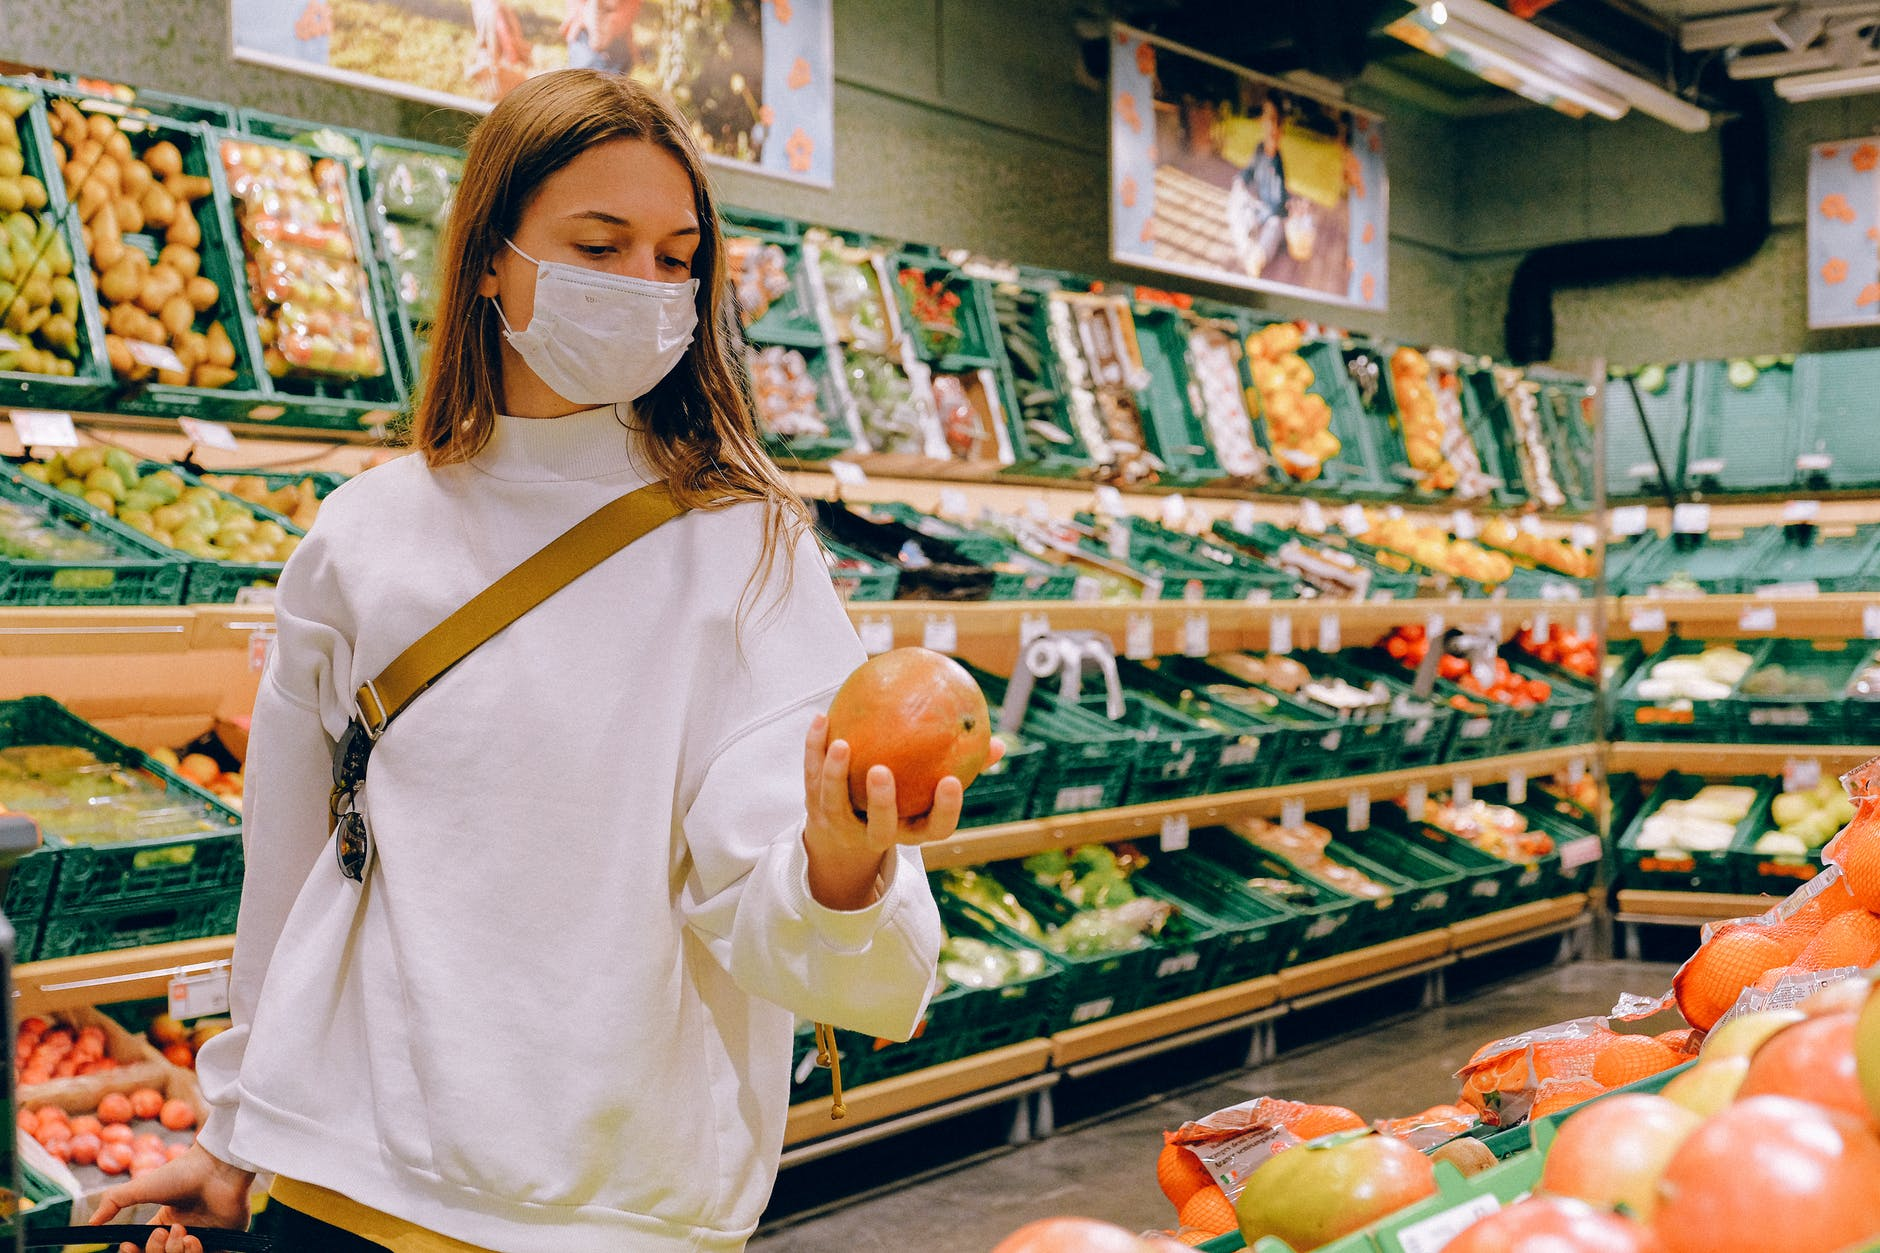 15 Simple Hacks to Reduce Grocery Store Trips